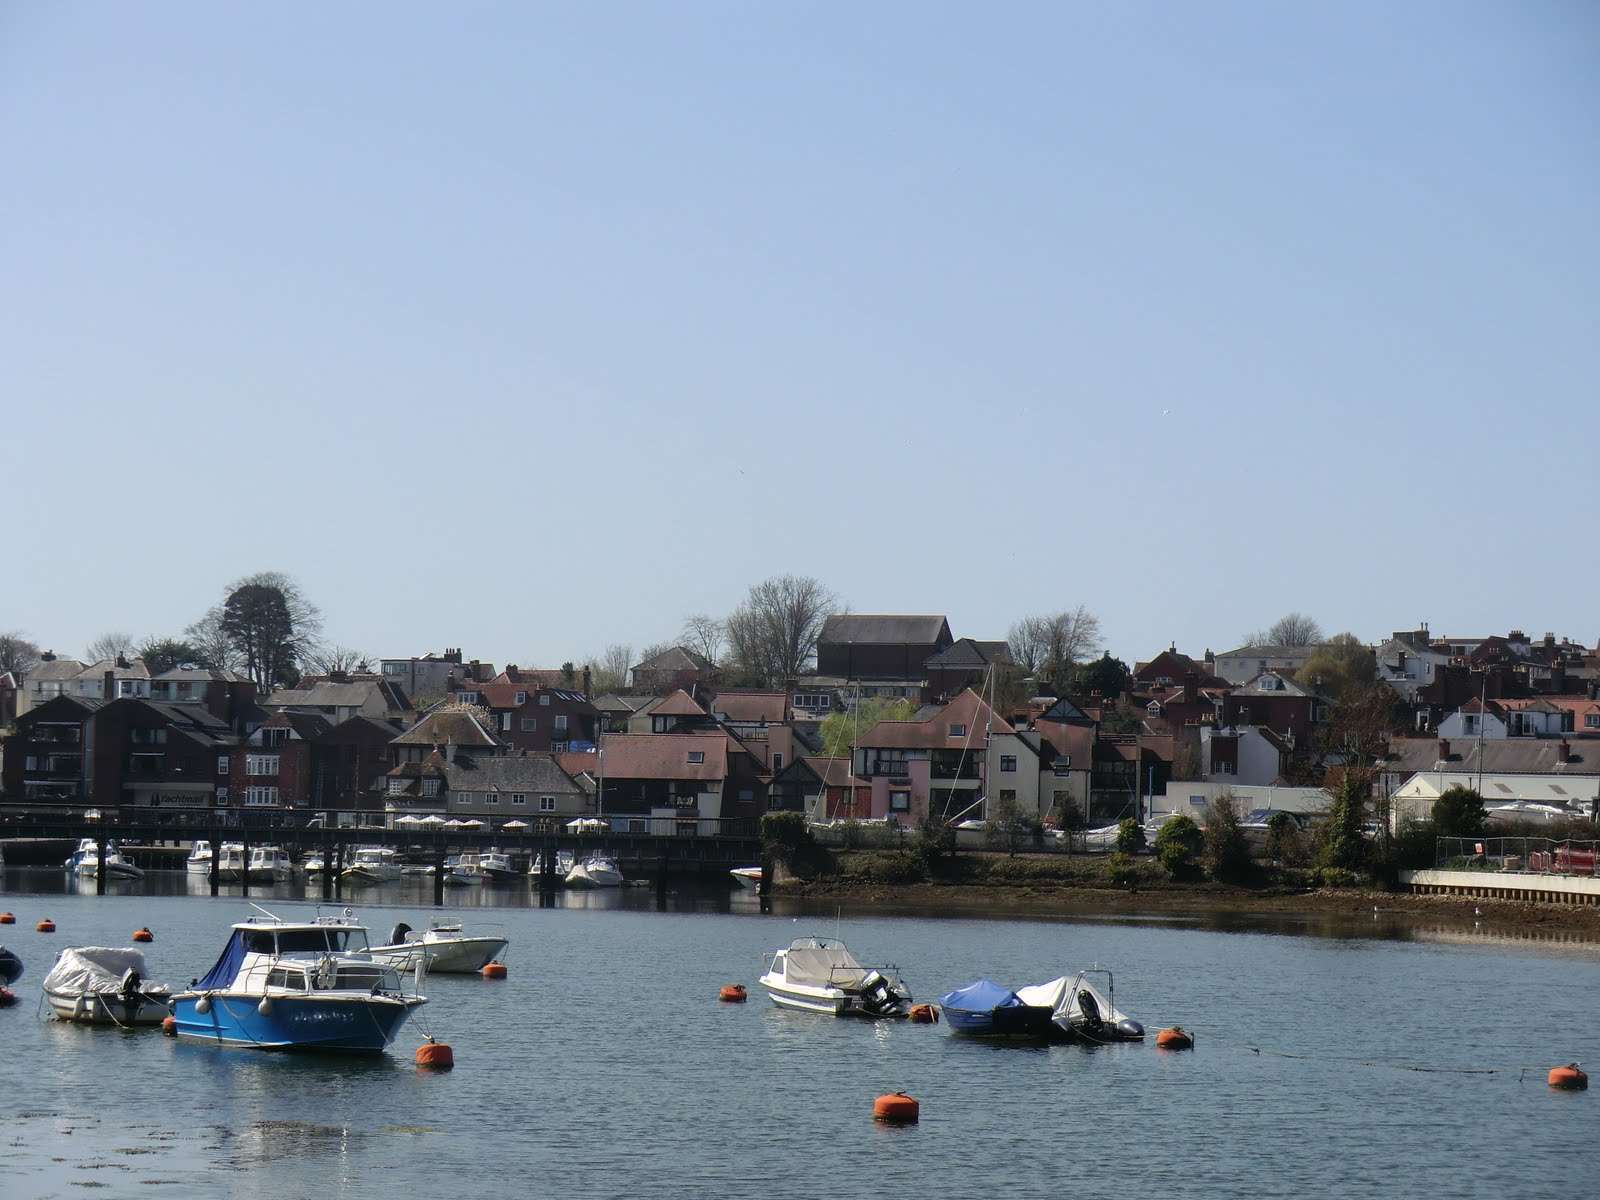 CIMG7620 Lymington from across the river